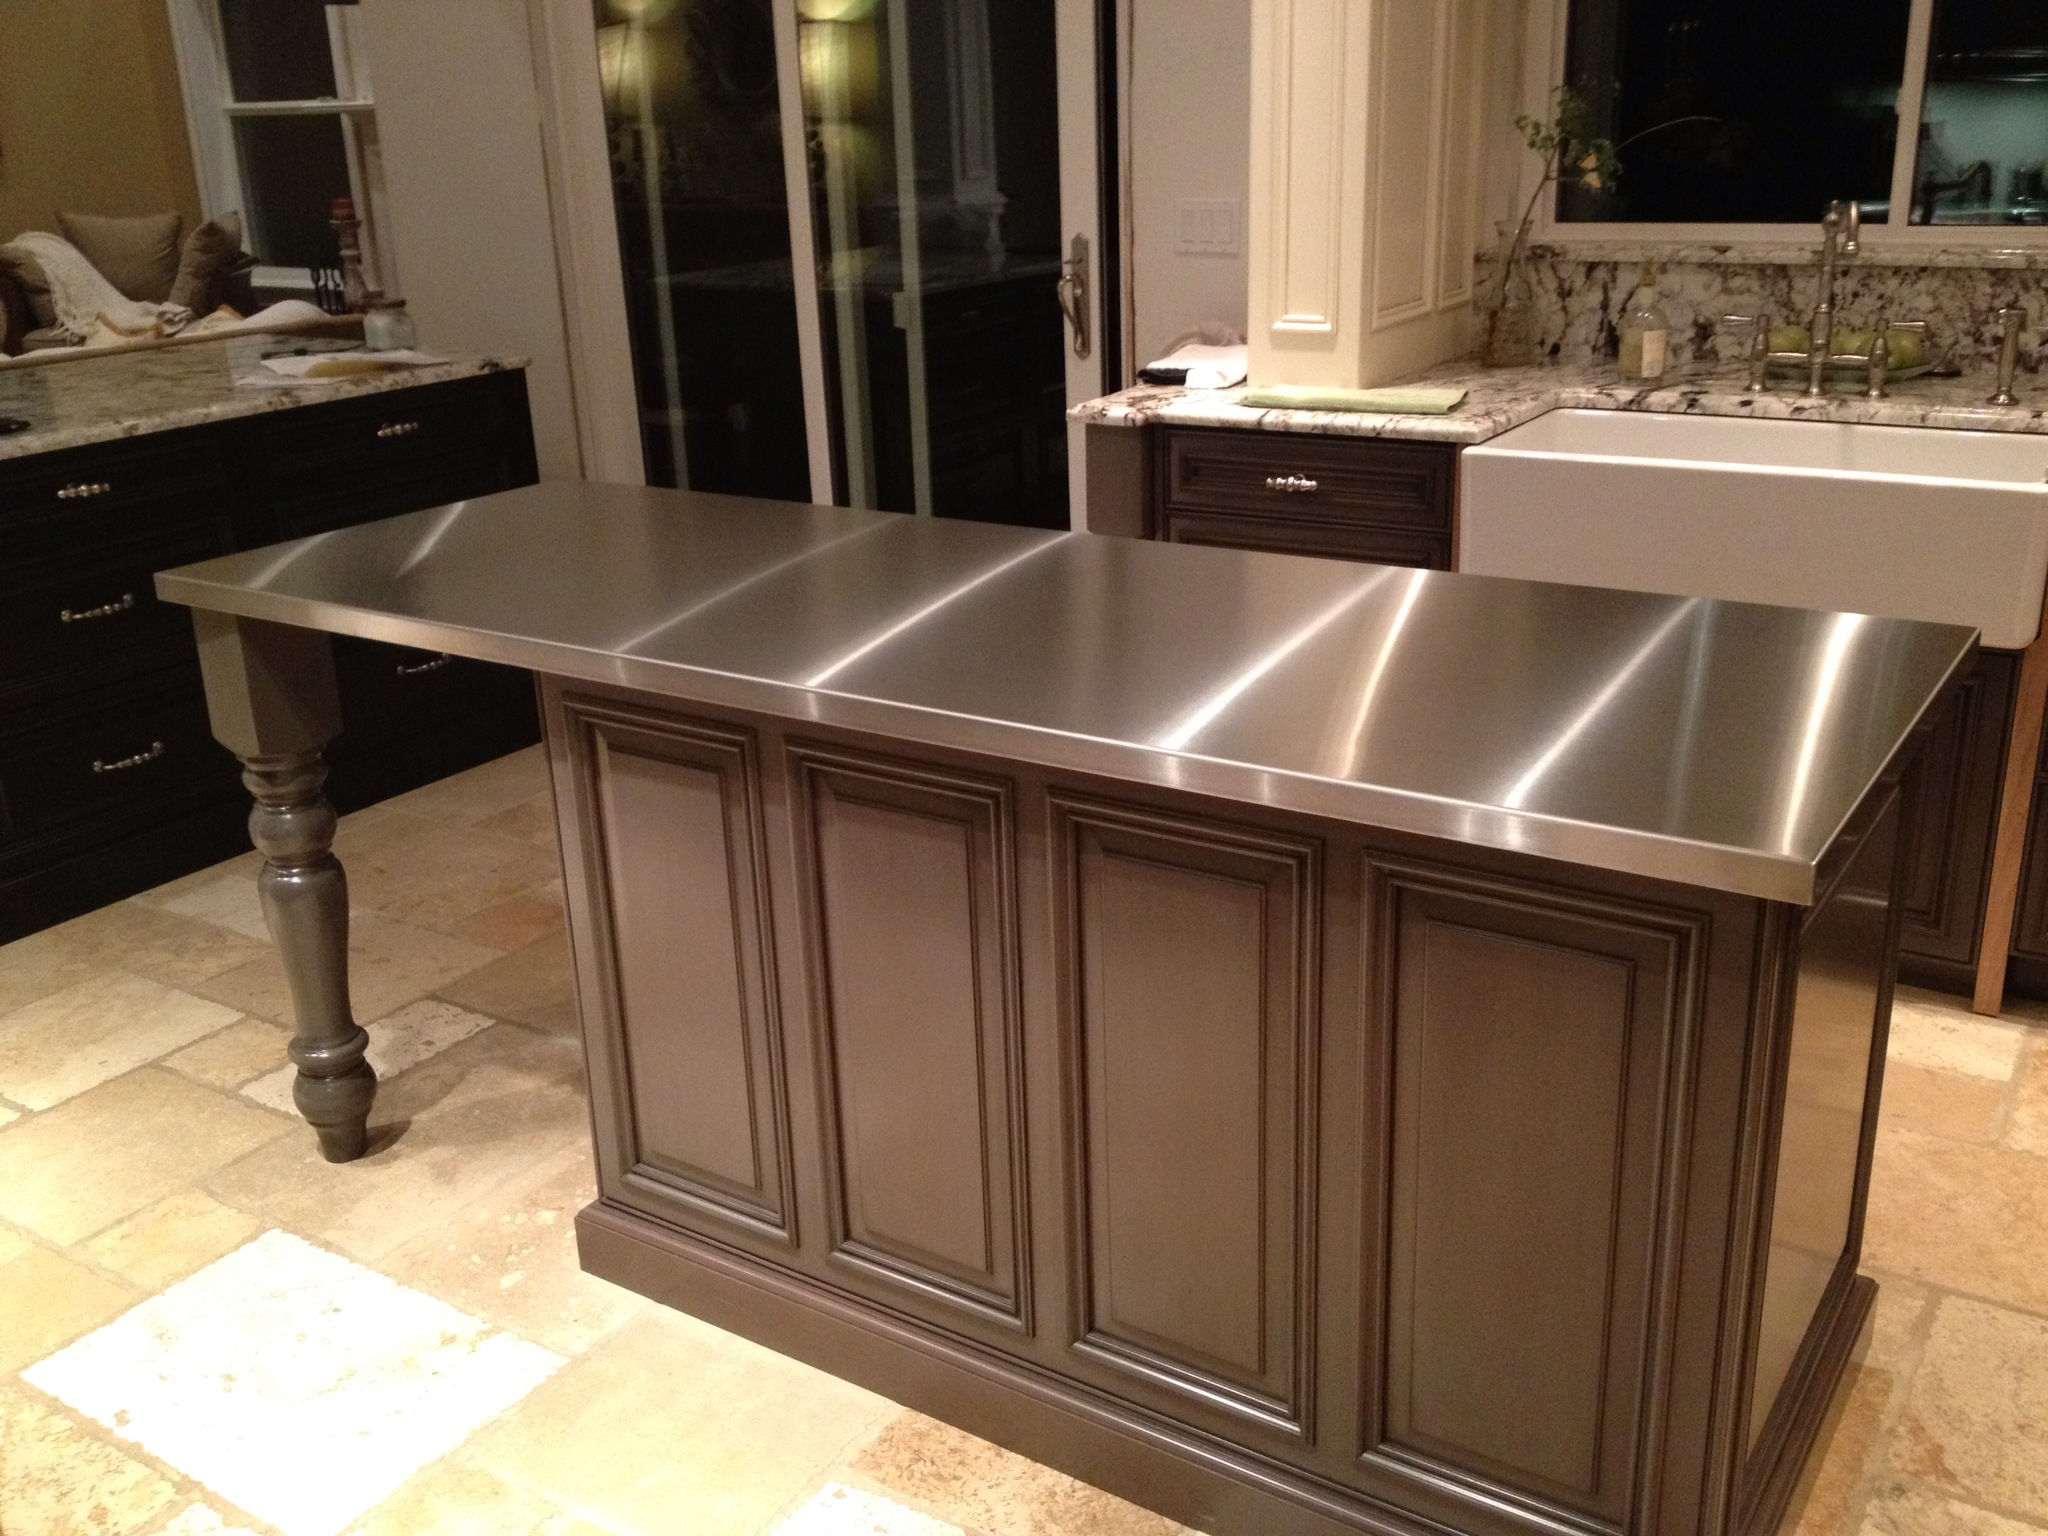 stainless steel countertops home countertops stainless steel ...